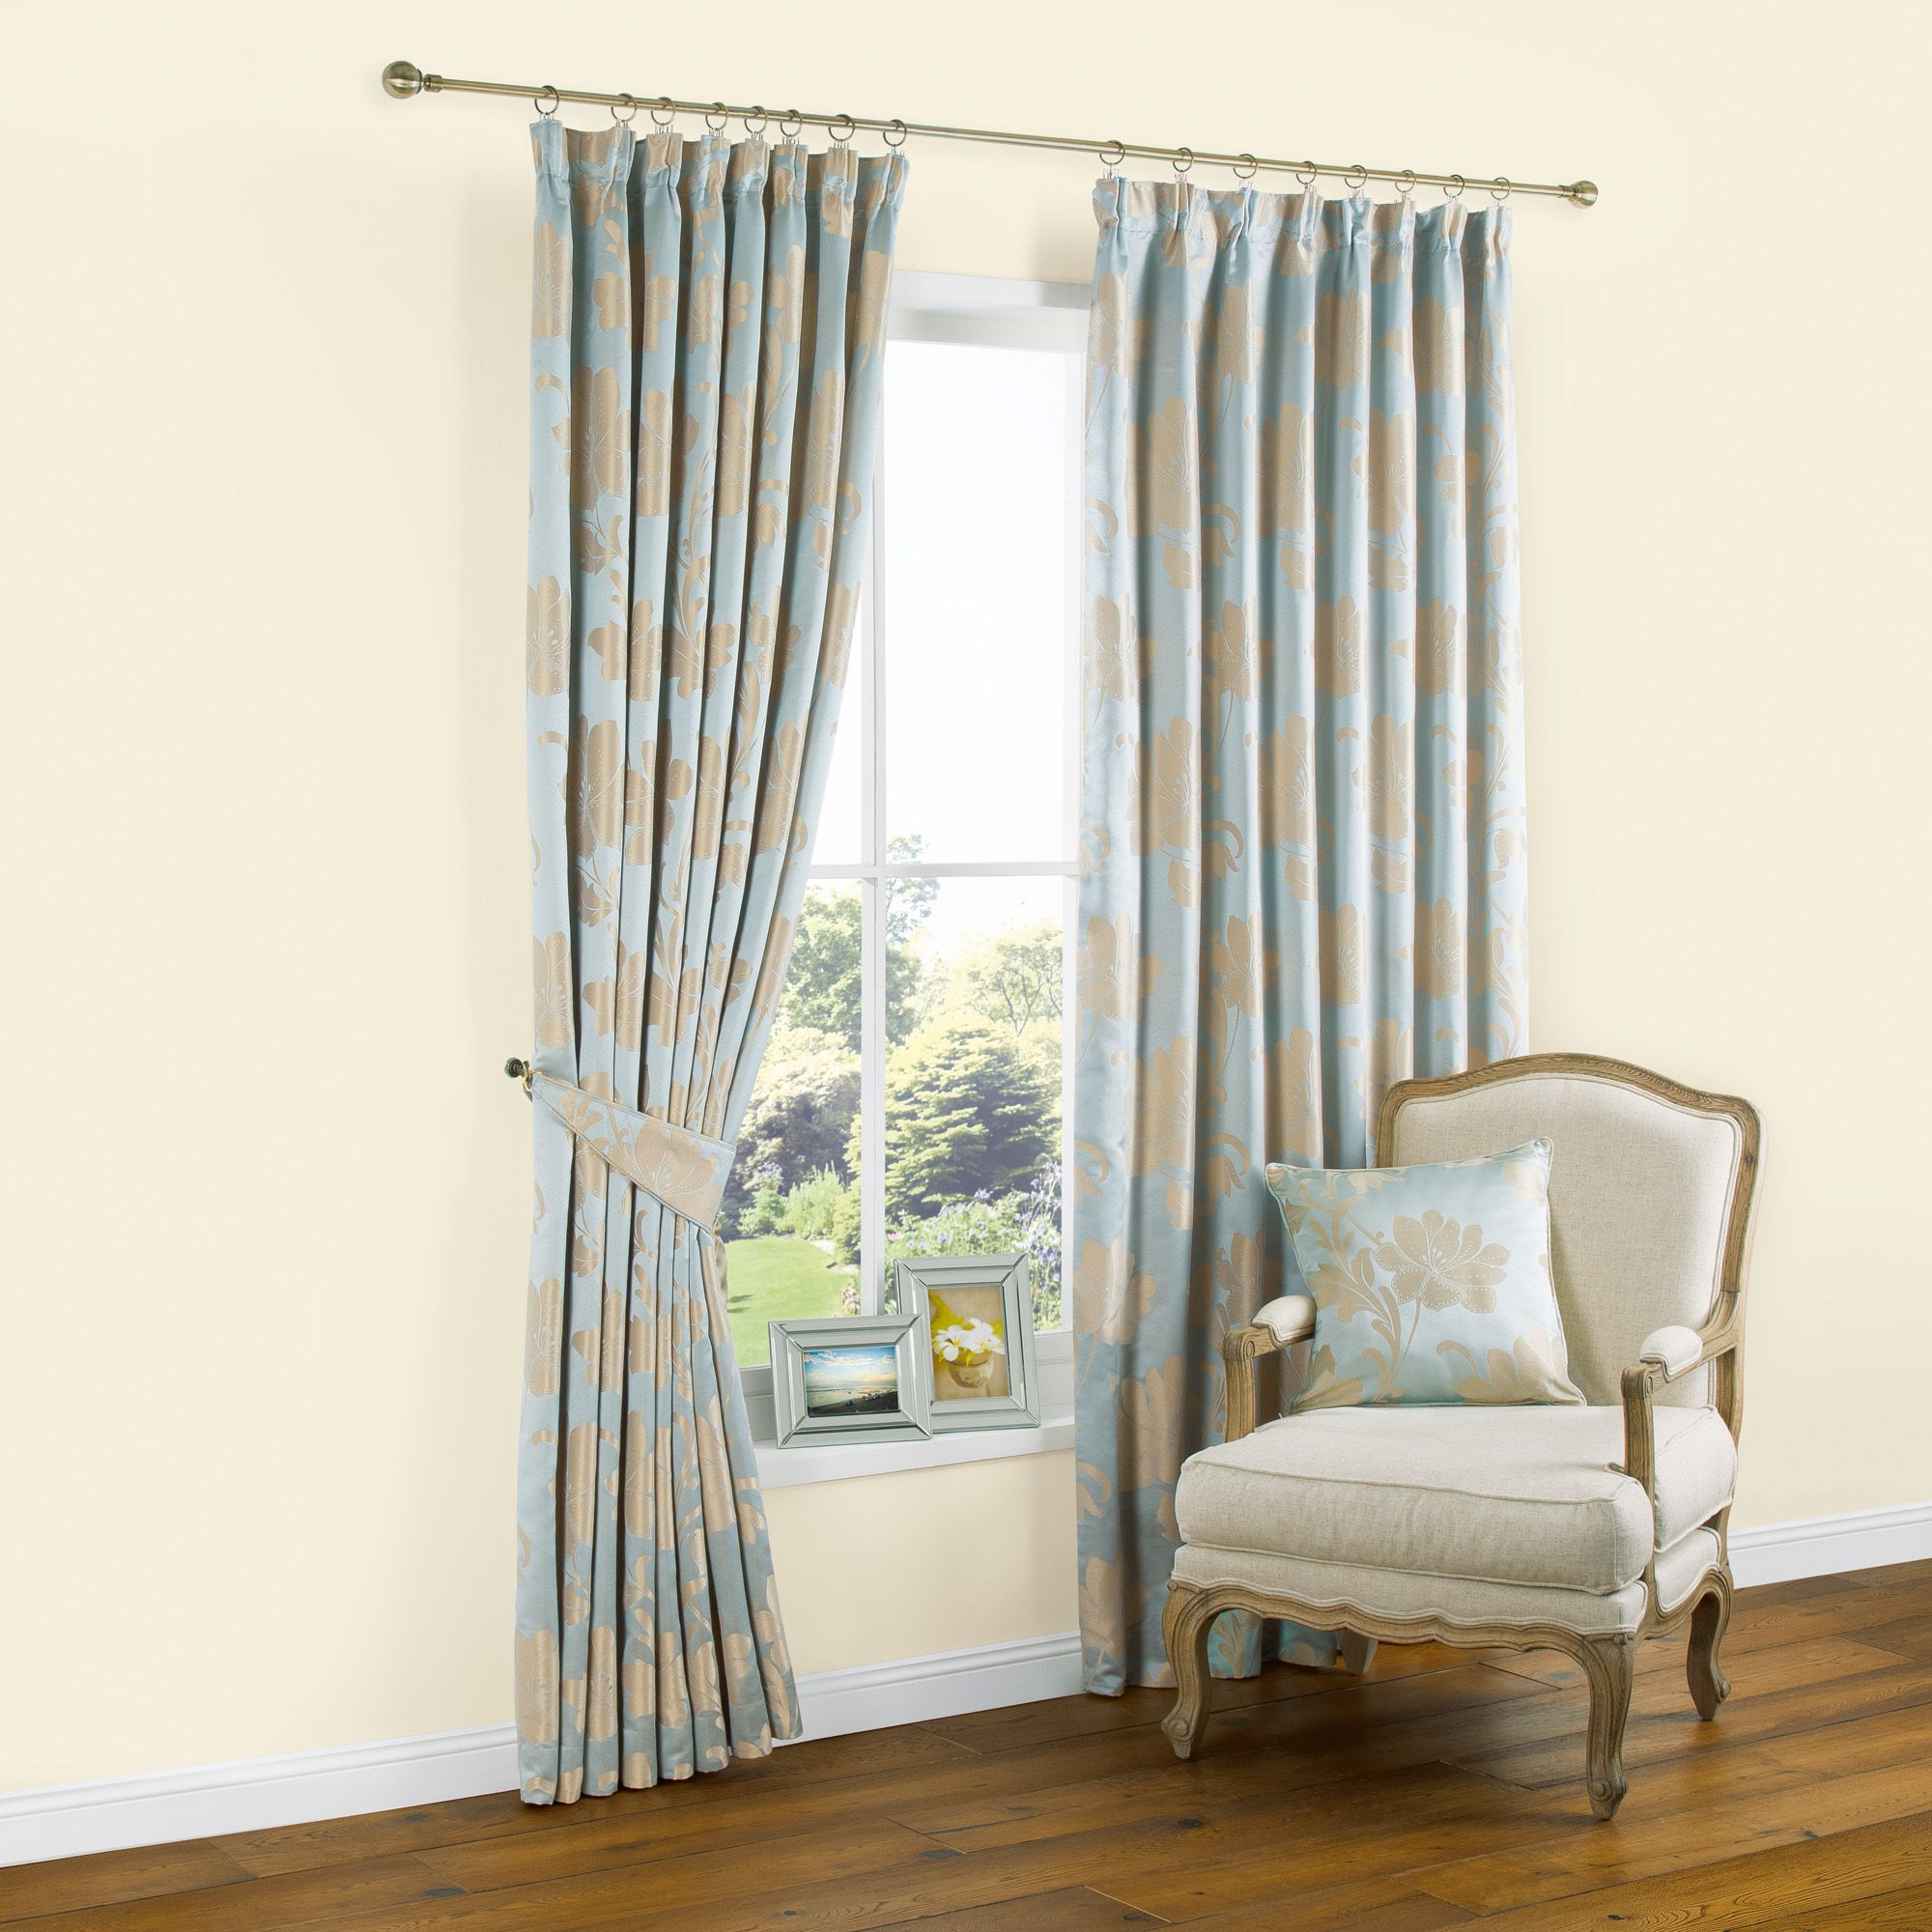 Caraway duck egg u gold effect floral jacquard pencil pleat curtains